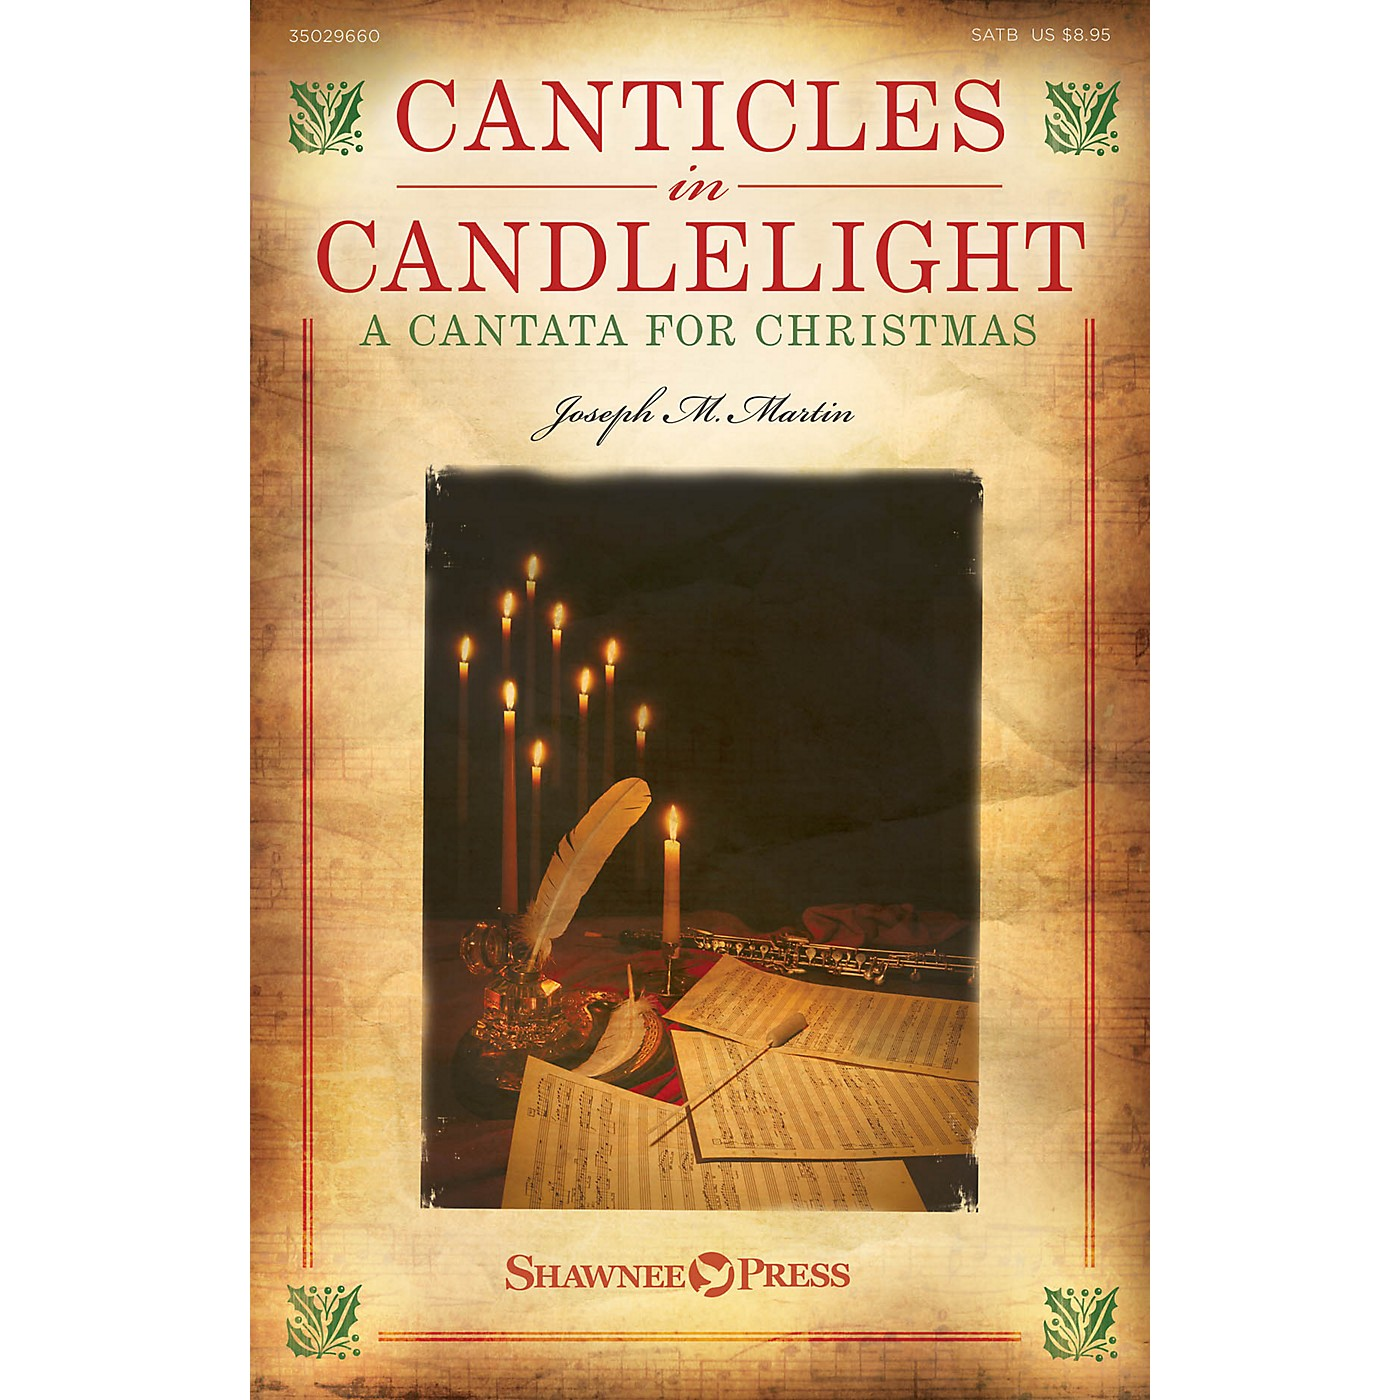 Shawnee Press Canticles in Candlelight (A Cantata for Christmas) Listening CD Composed by Joseph M. Martin thumbnail